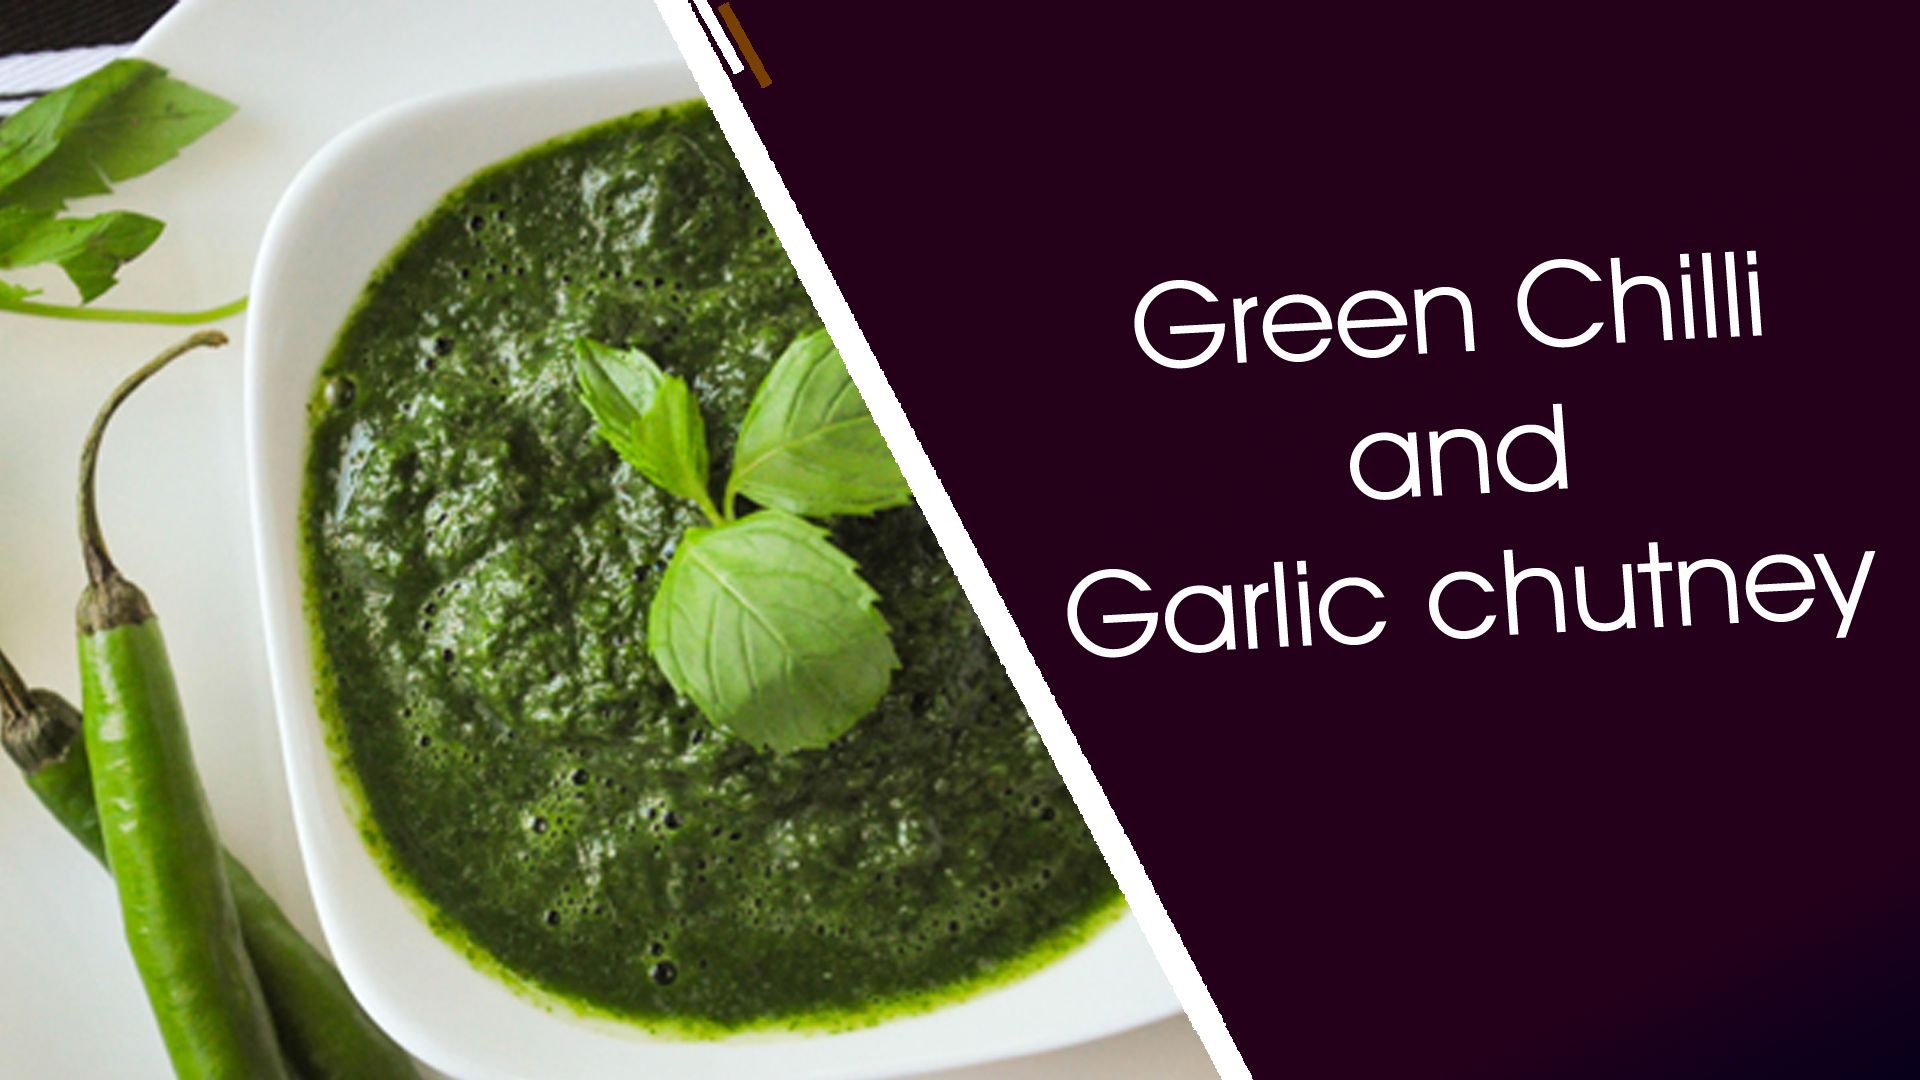 Green Chilli and Garlic Chutney